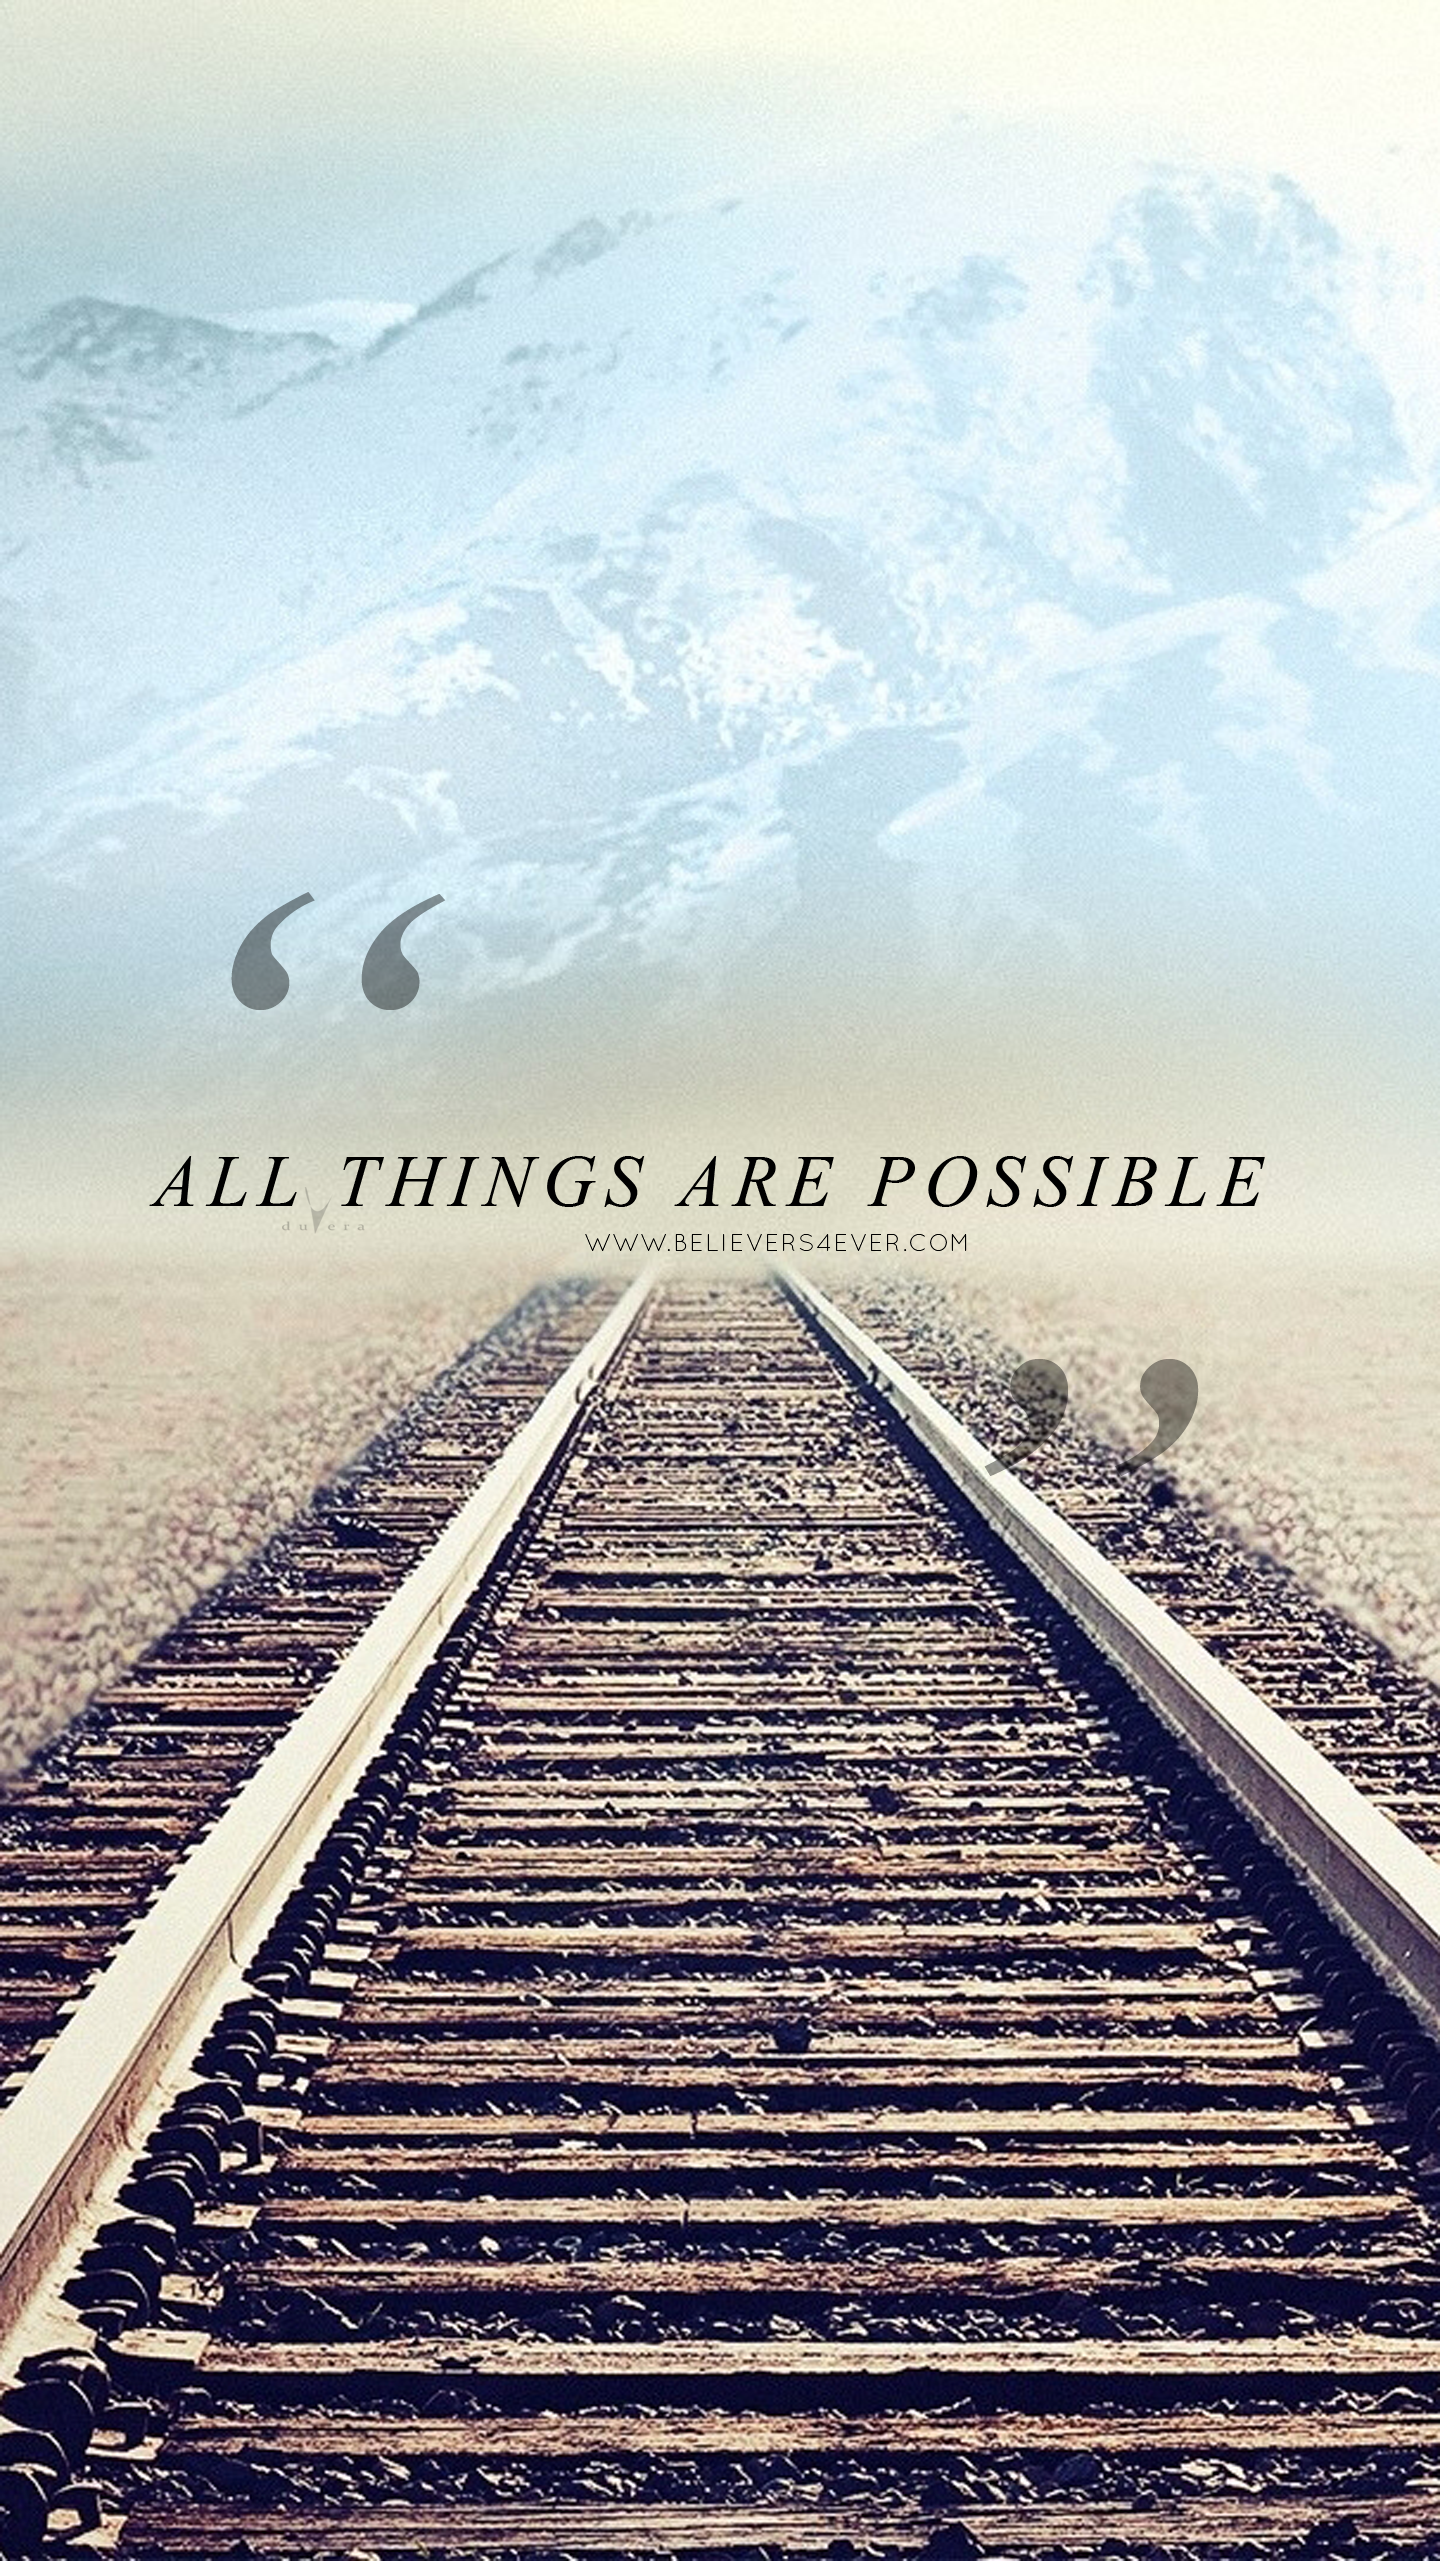 All things are possible Christian mobile lock screen wallpaper